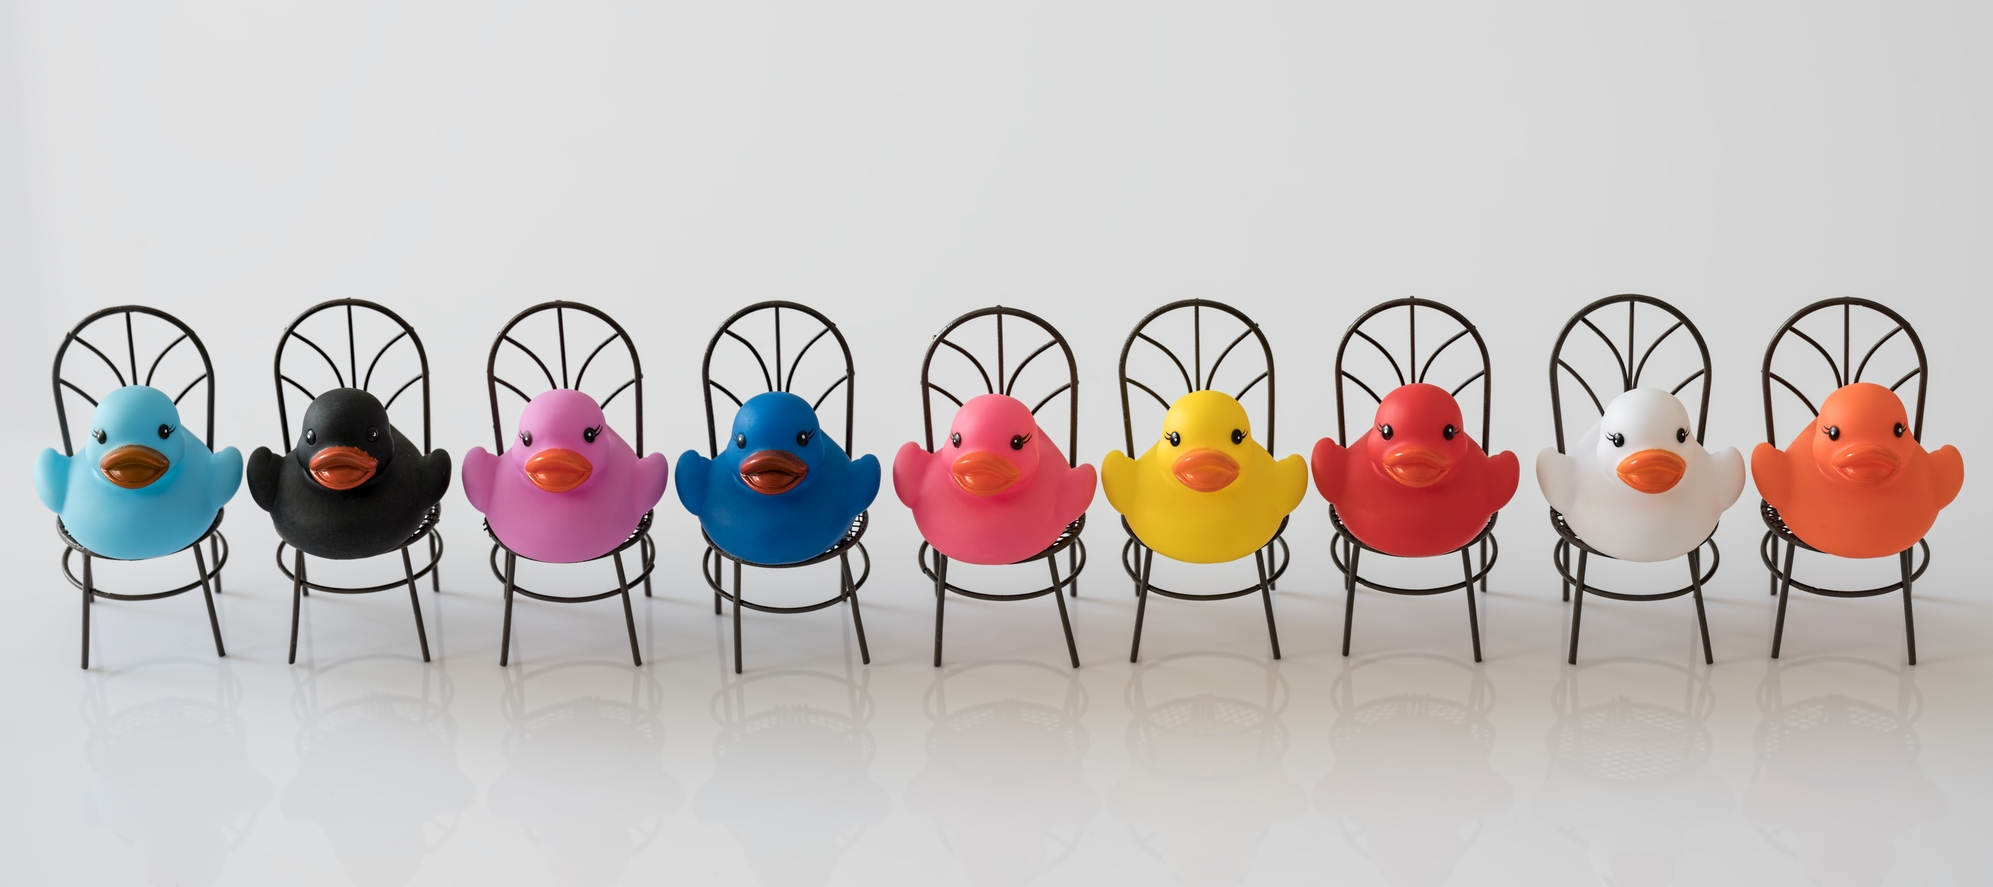 Getting your ducks in a row - team building